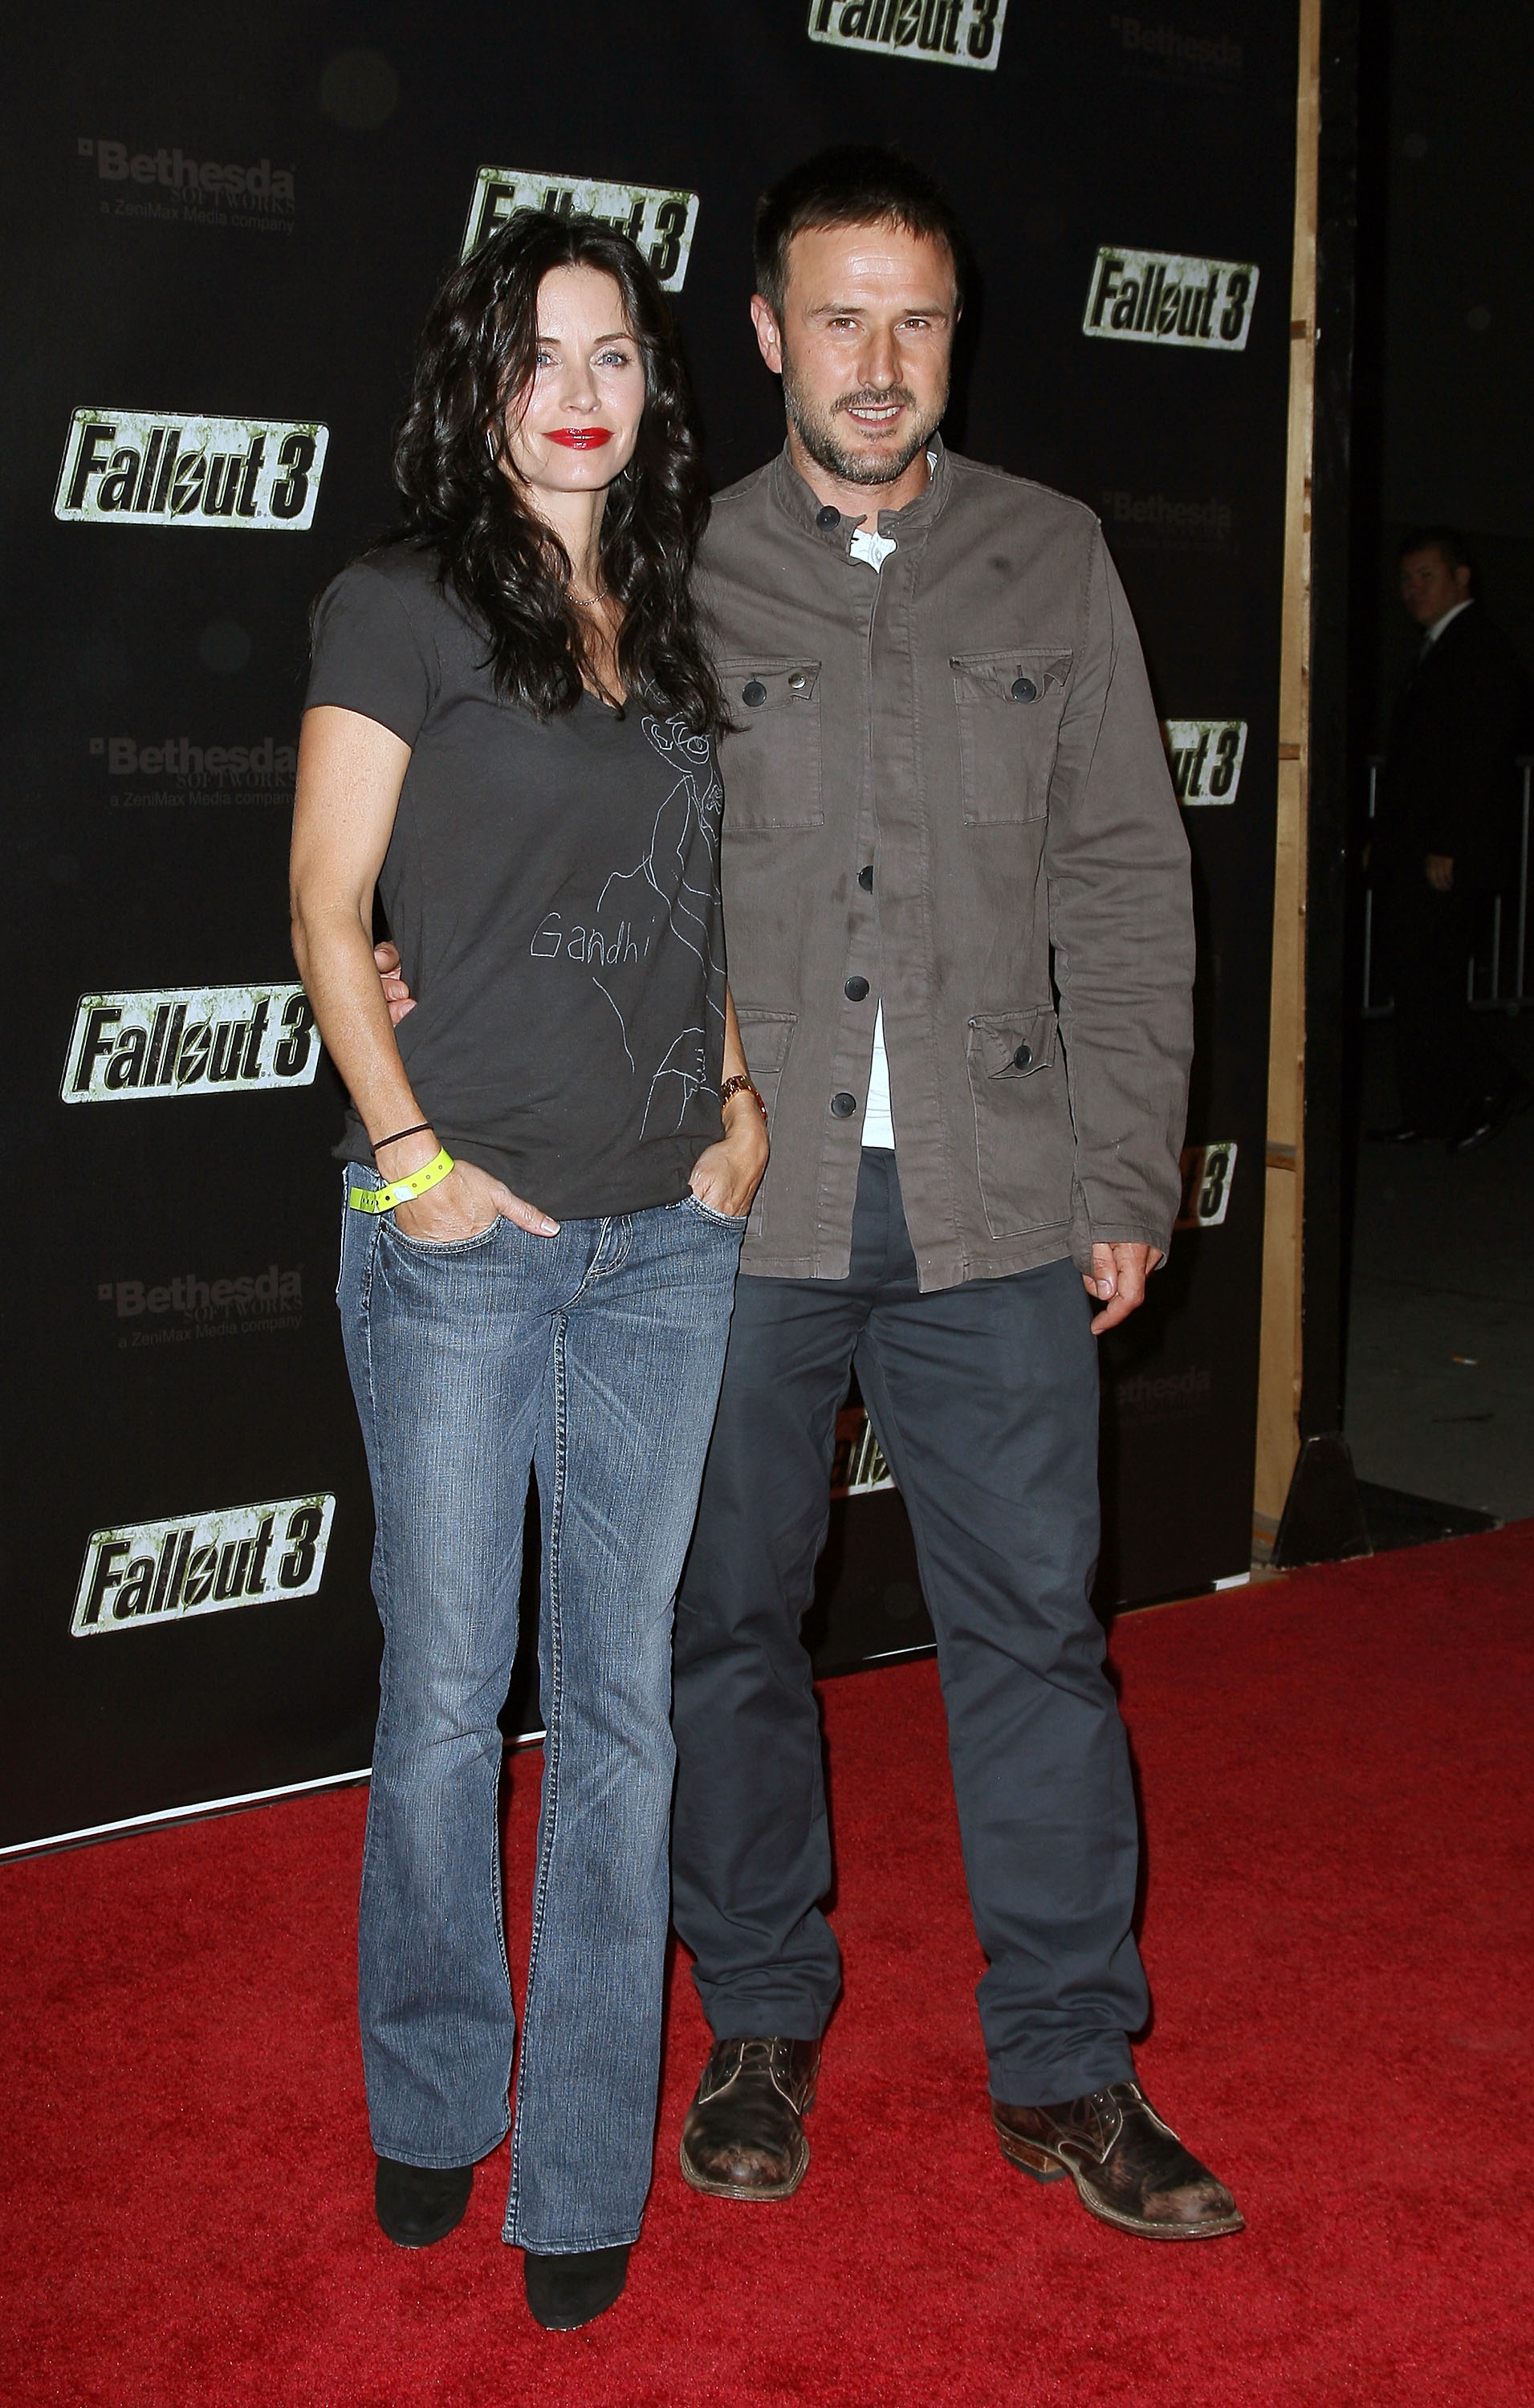 55320_Celebutopia-Courteney_Cox-Launch_Party_for_Fallout_3_videogame-02_122_435lo.jpg